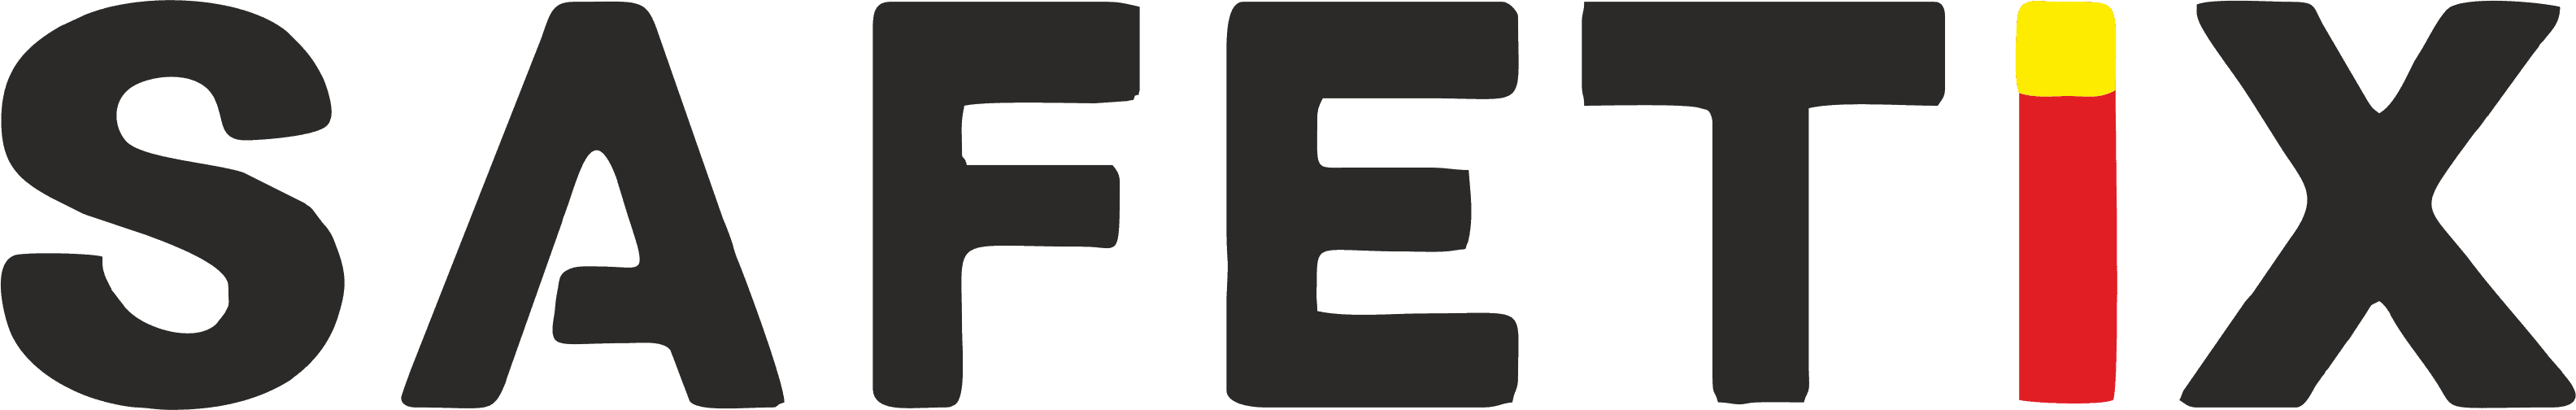 Safetix Logo (Rectangle)